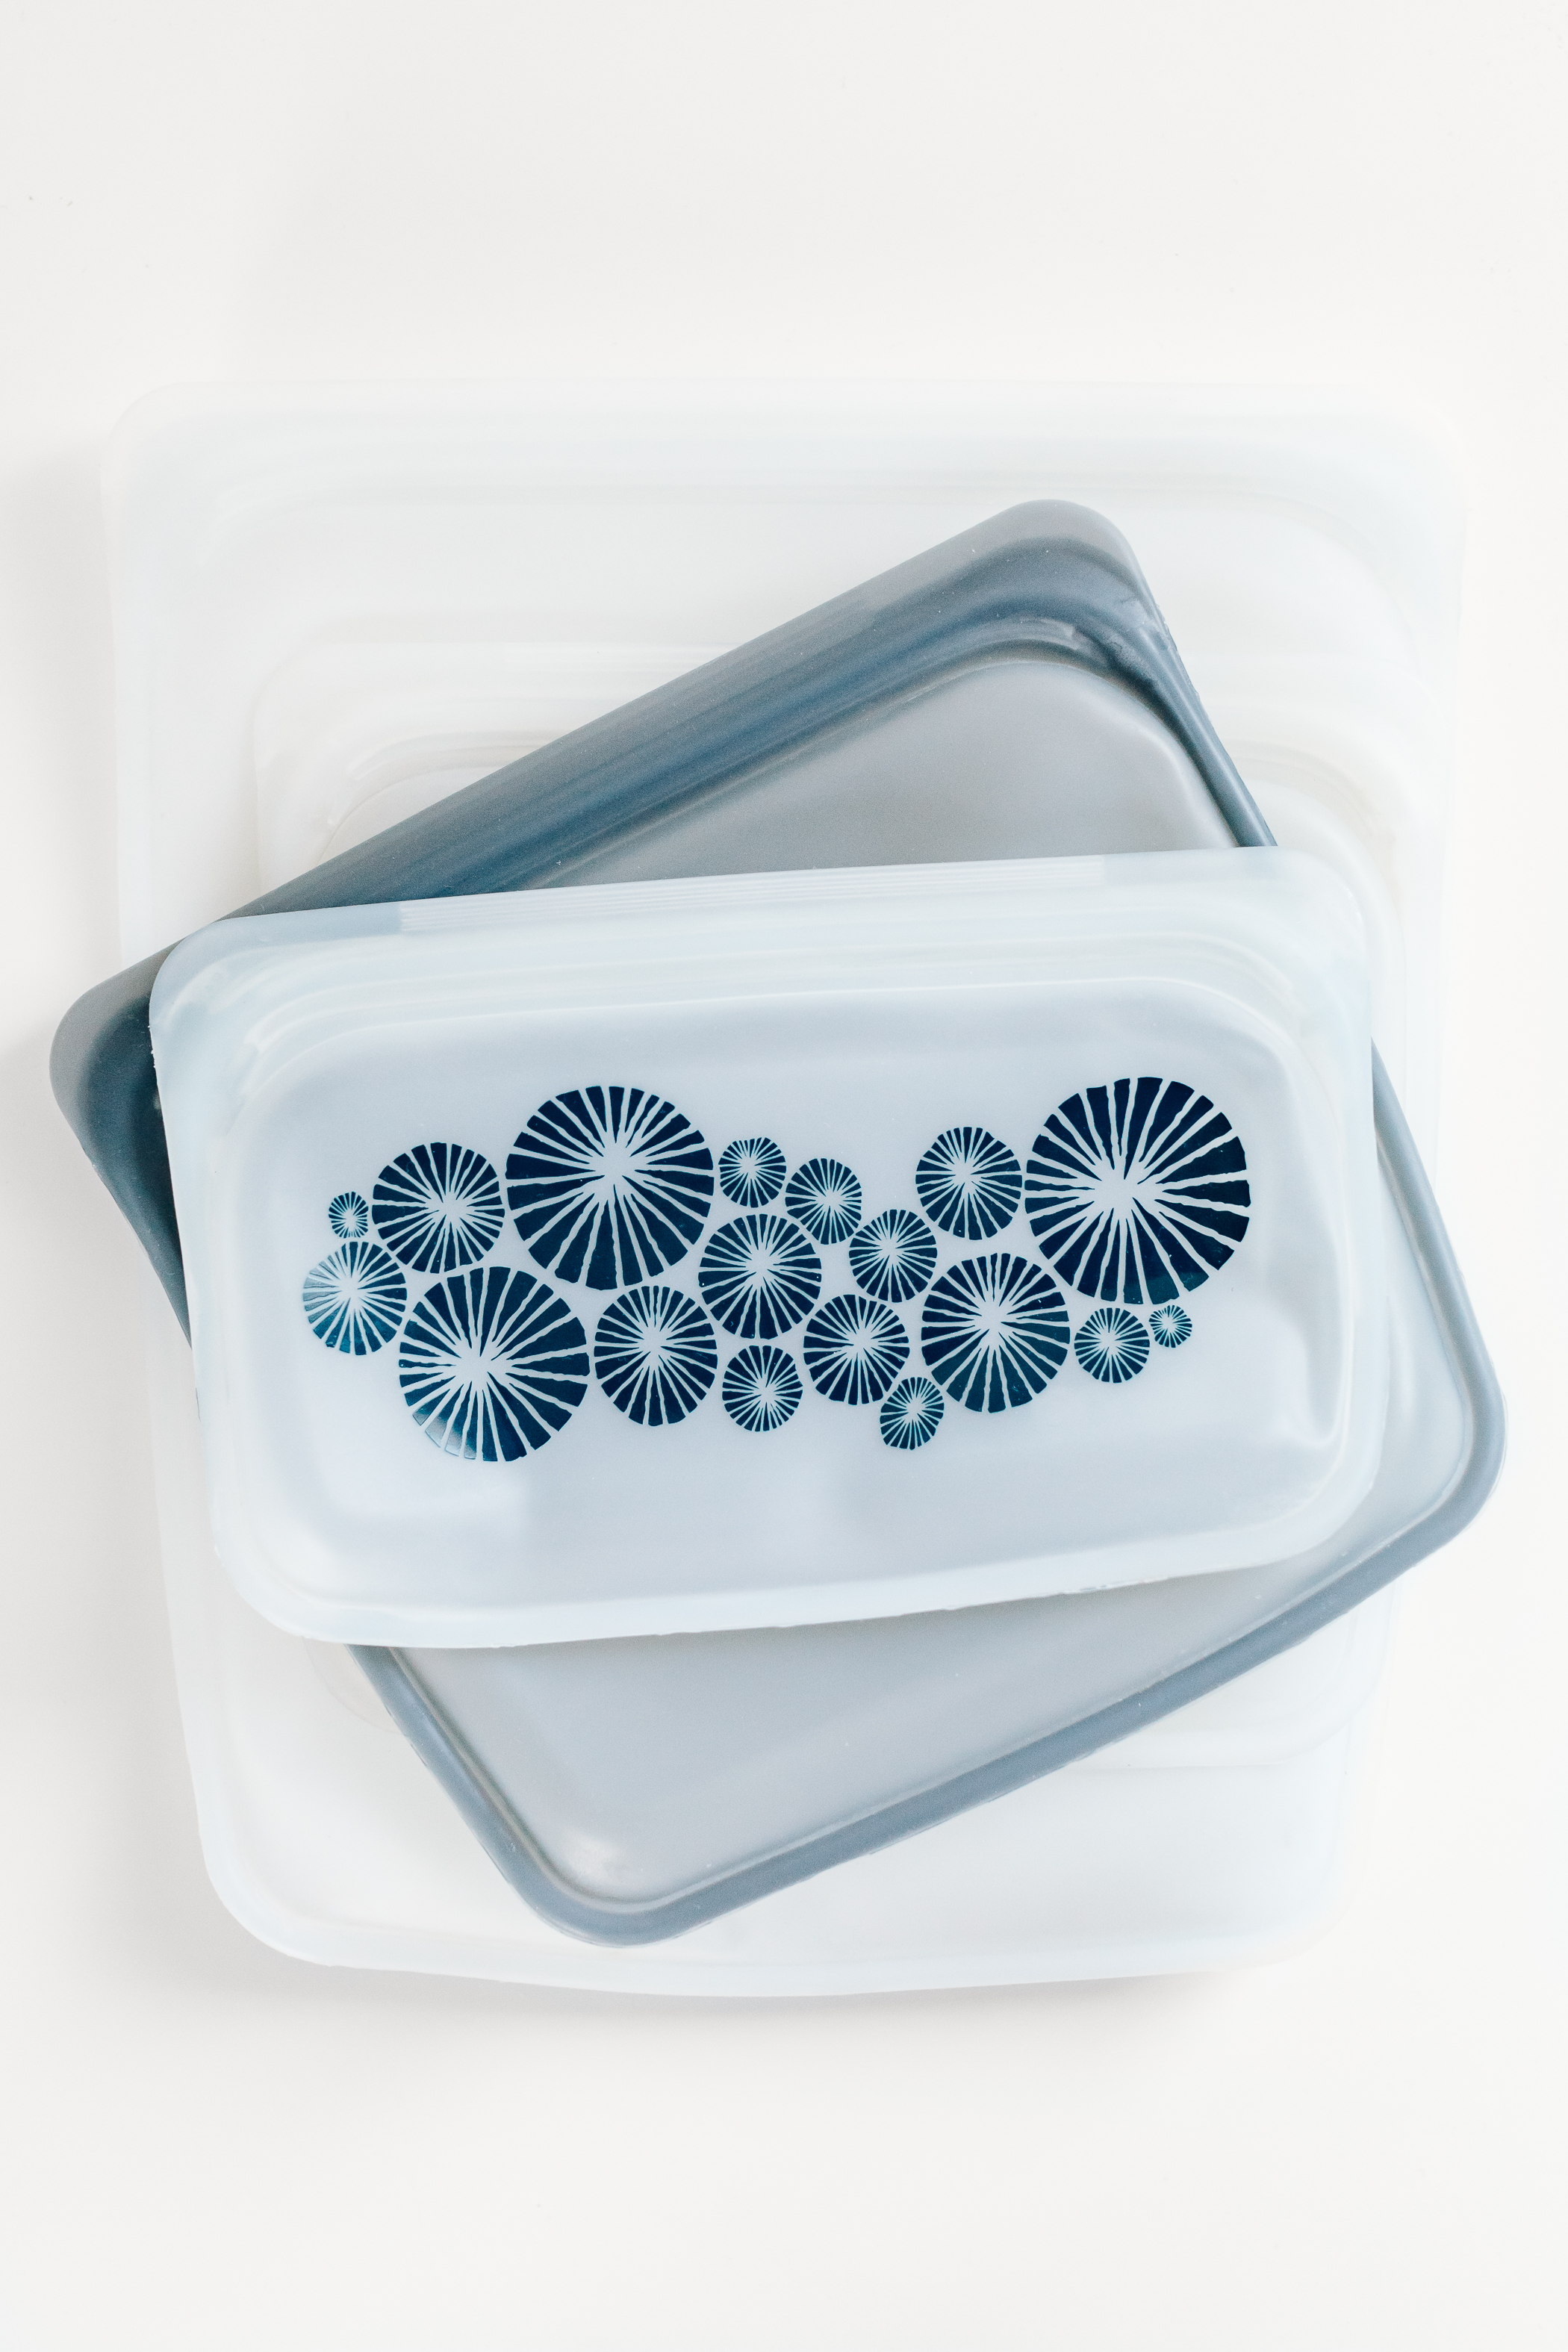 Stasher Bags - These silicone bags are great replacements for plastic baggies. We use them for all types of food and they are great for traveling as well. Freezer safe and really high quality.The large half gallon bags are great for frozen fruits and veggies, the medium bags for sandwiches, and small bags for snacks and avocado halves. (Amongst so many other things.)I order mine from Amazon.